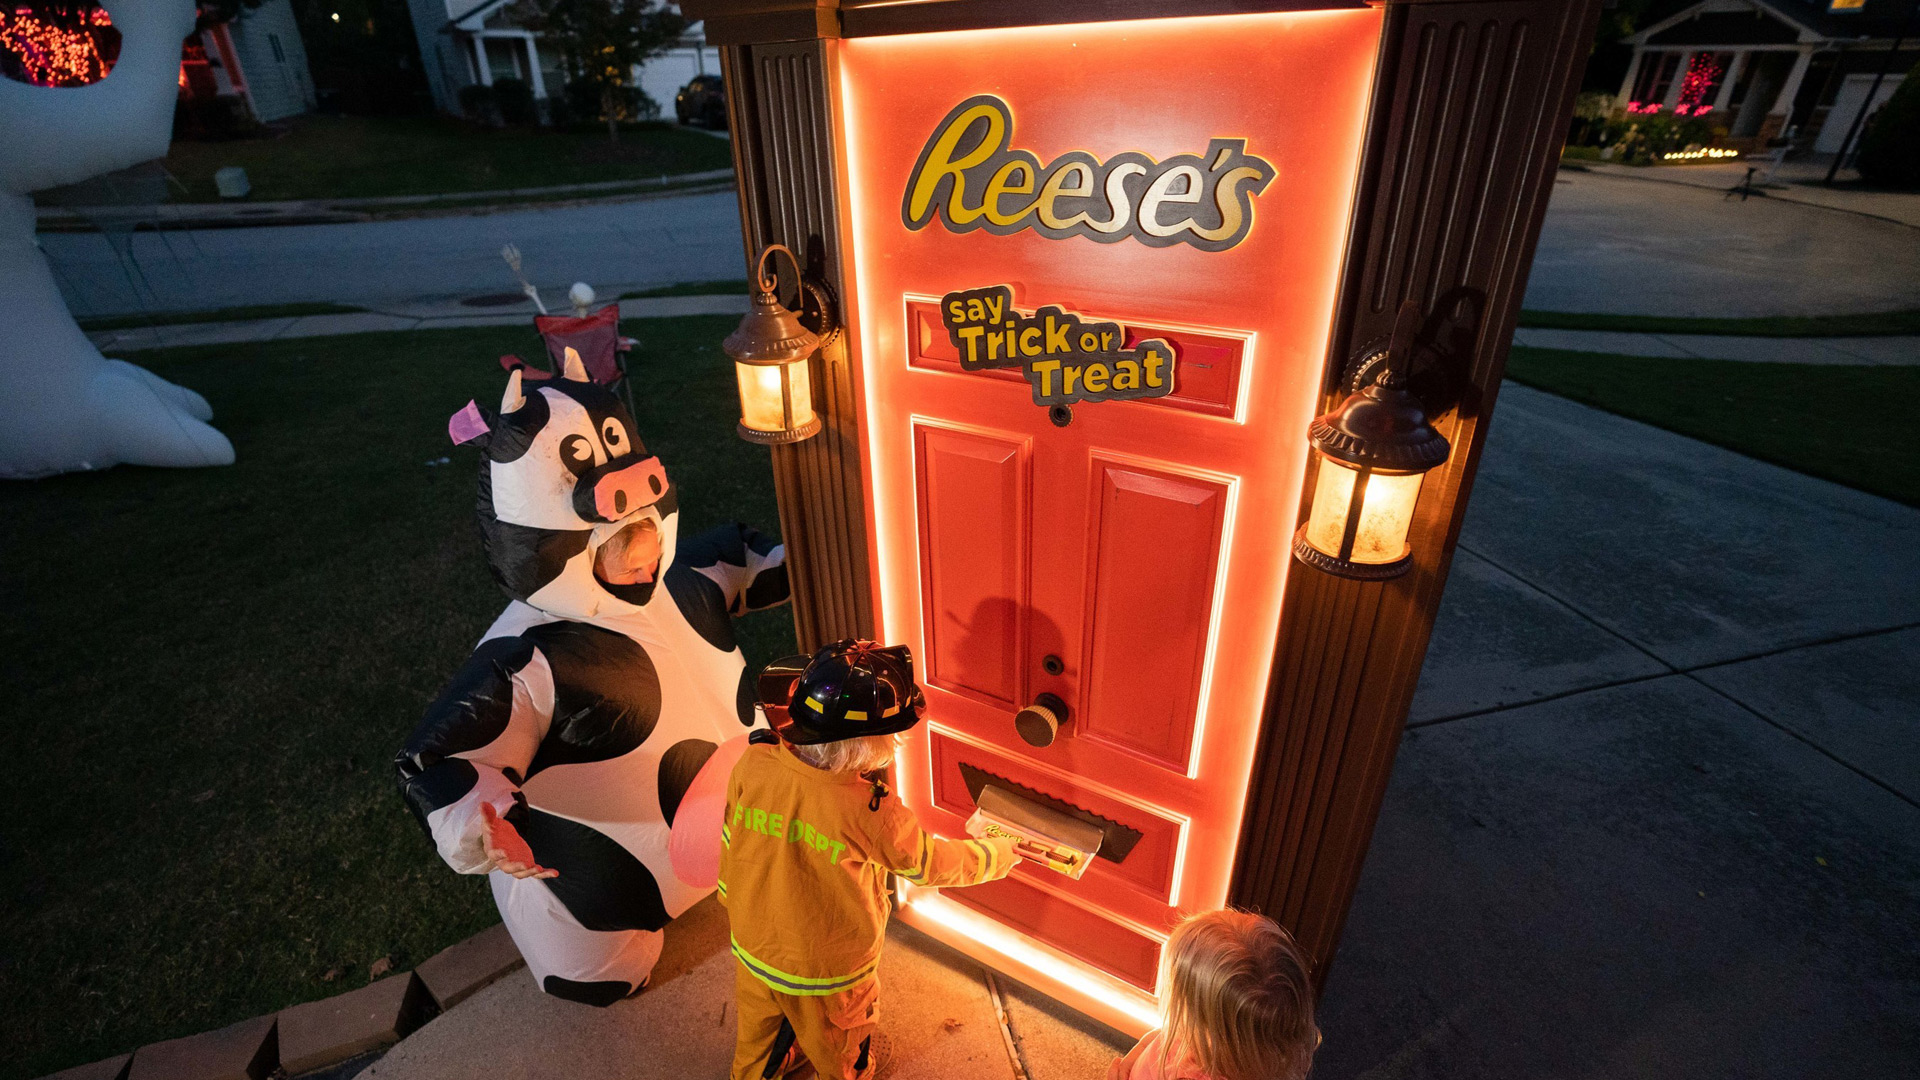 Reese's robotic Halloween door